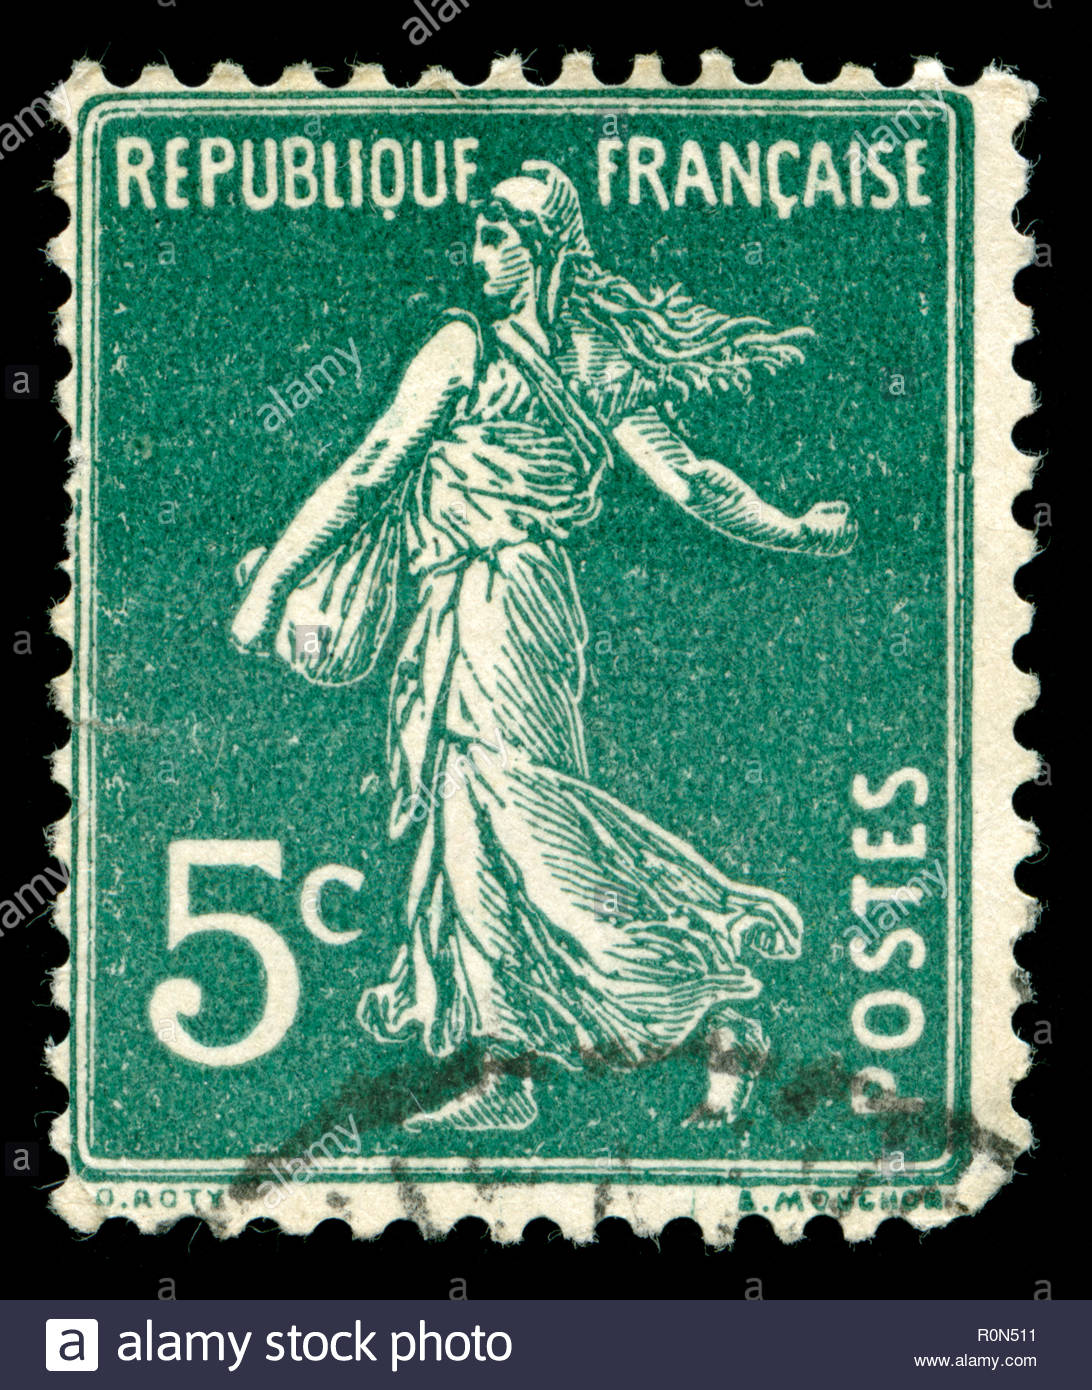 Postage stamp from France in the Semeuse solid background series - Stock Image